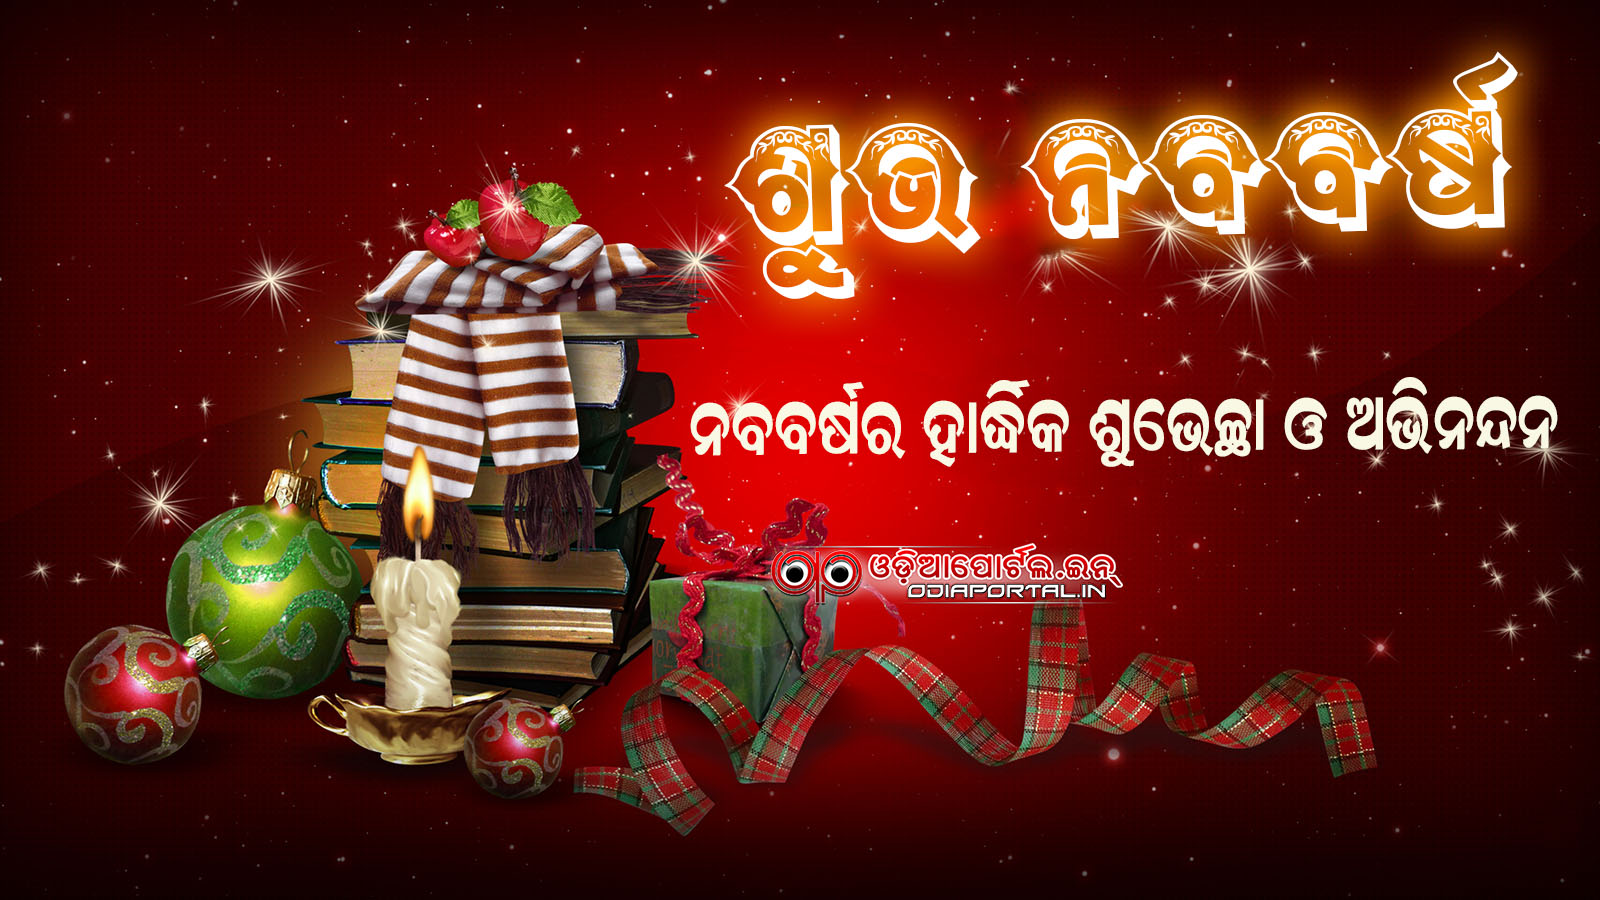 Download happy new year 2018 odia hq greeting cards and scraps for nua barsa orissa odisha wallpaper in odia oriya naba barsa wallpaper greetings scraps happy new year kristyandbryce Gallery